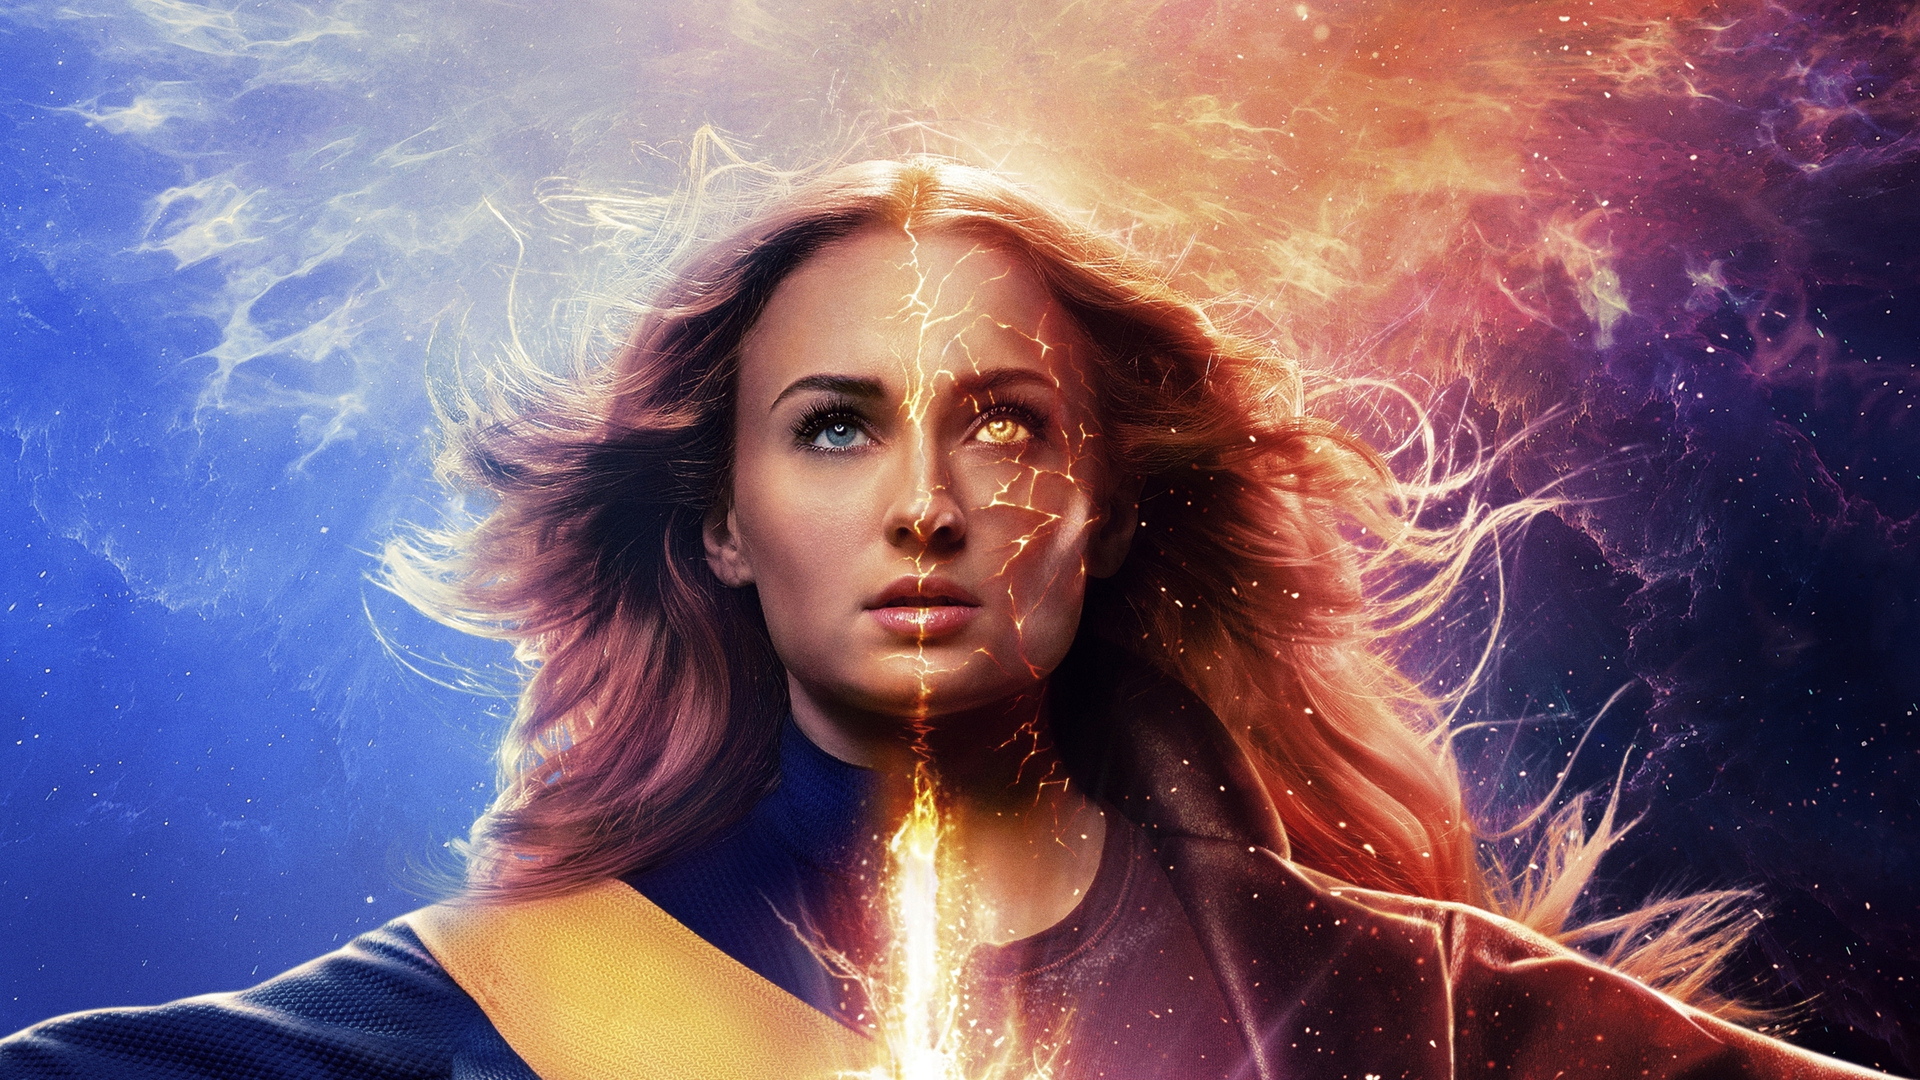 1920x1080 2019 X Men Dark Phoenix 4k Laptop Full HD 1080P HD 4k